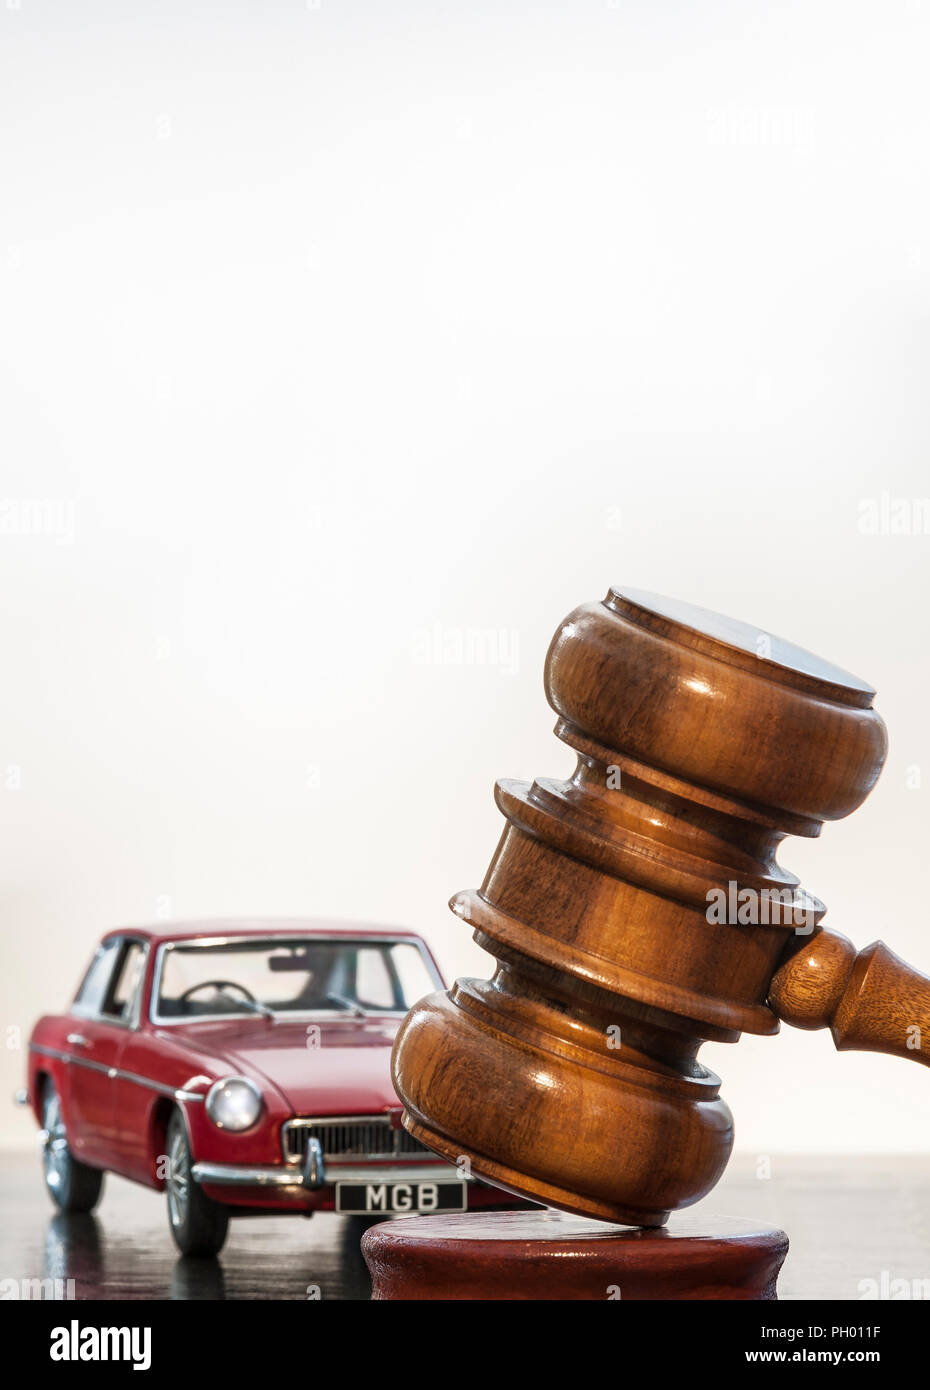 Mgb Gt Stock Photos Images Alamy Back Gallery For Parallel Circuit Definition Kids Concept Image Of Classic Red Vintage 1969 With Auctioneers Hammer In Car Auction